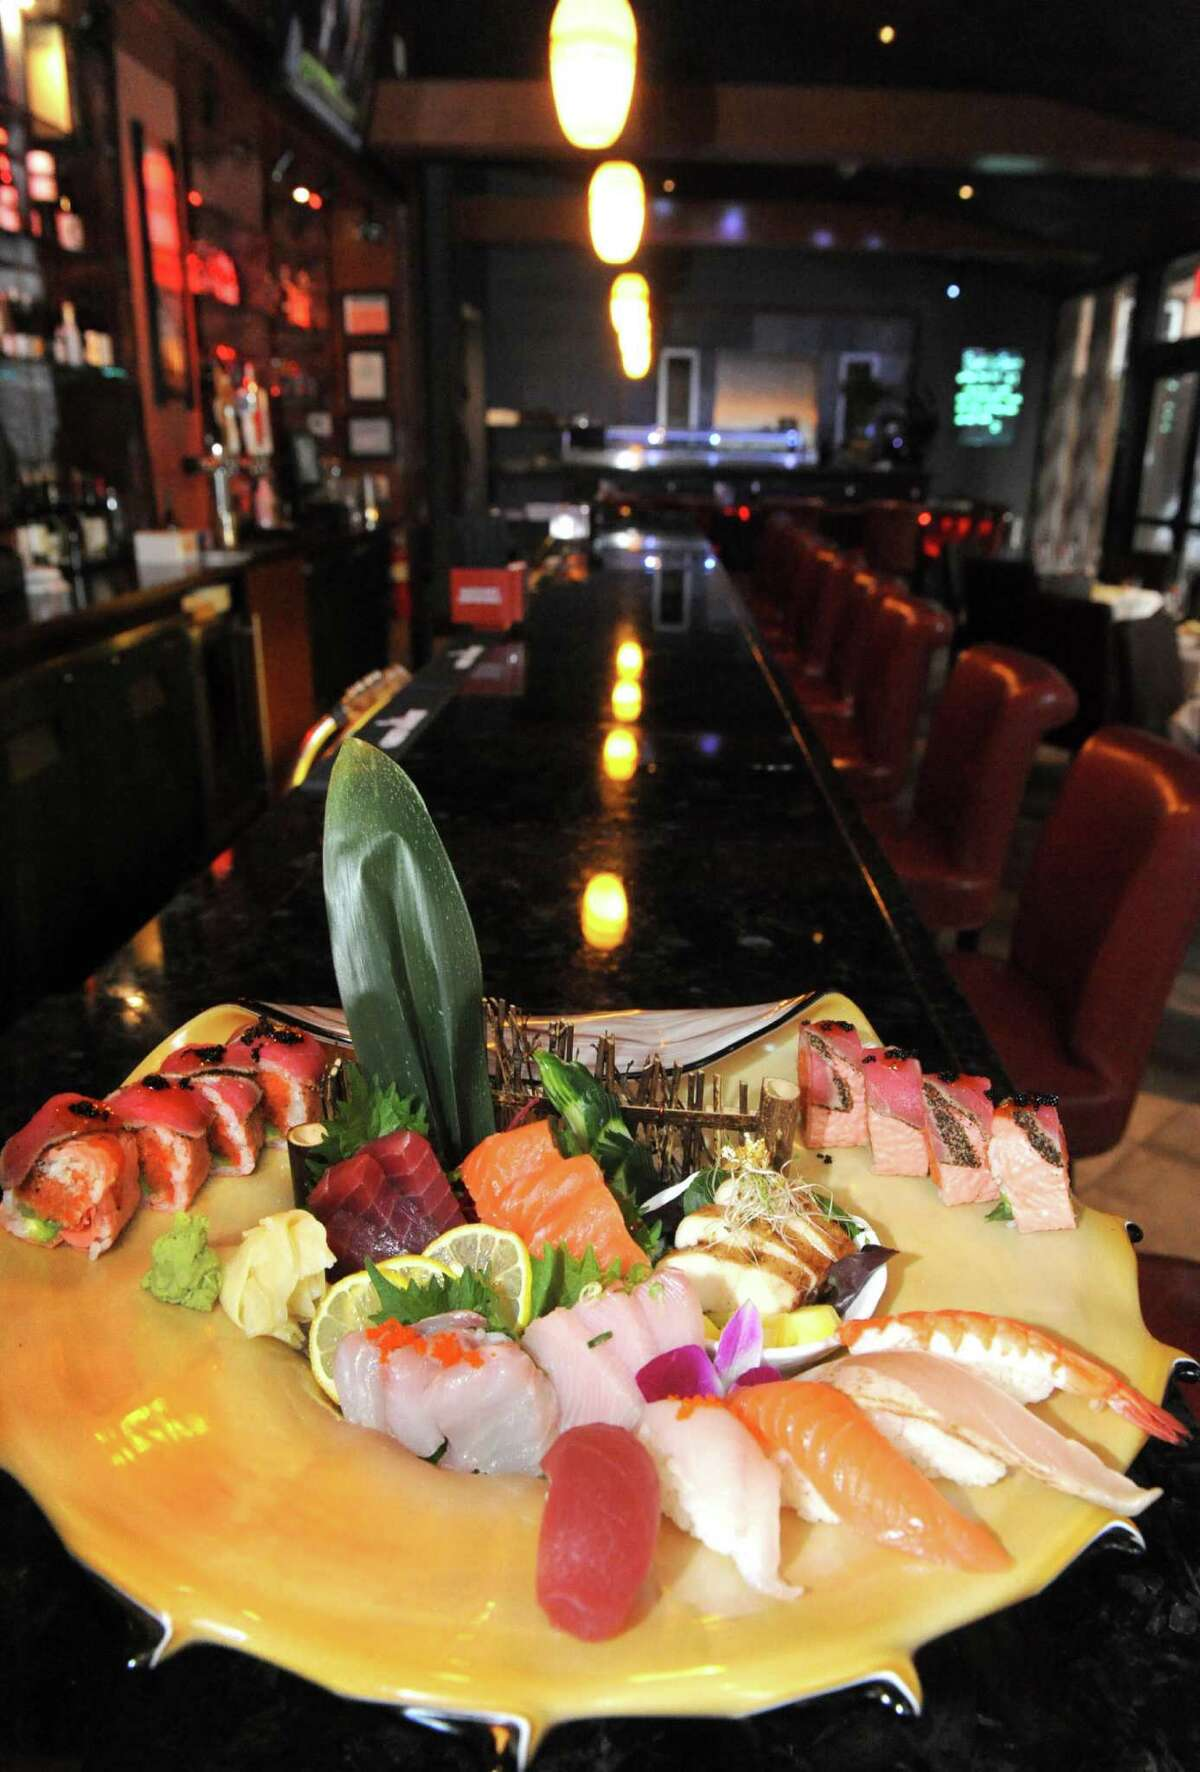 Chef's special sushi combo at Aji Steak Stone on Wednesday Feb. 24, 2016 in Albany, N.Y. (Michael P. Farrell/Times Union)